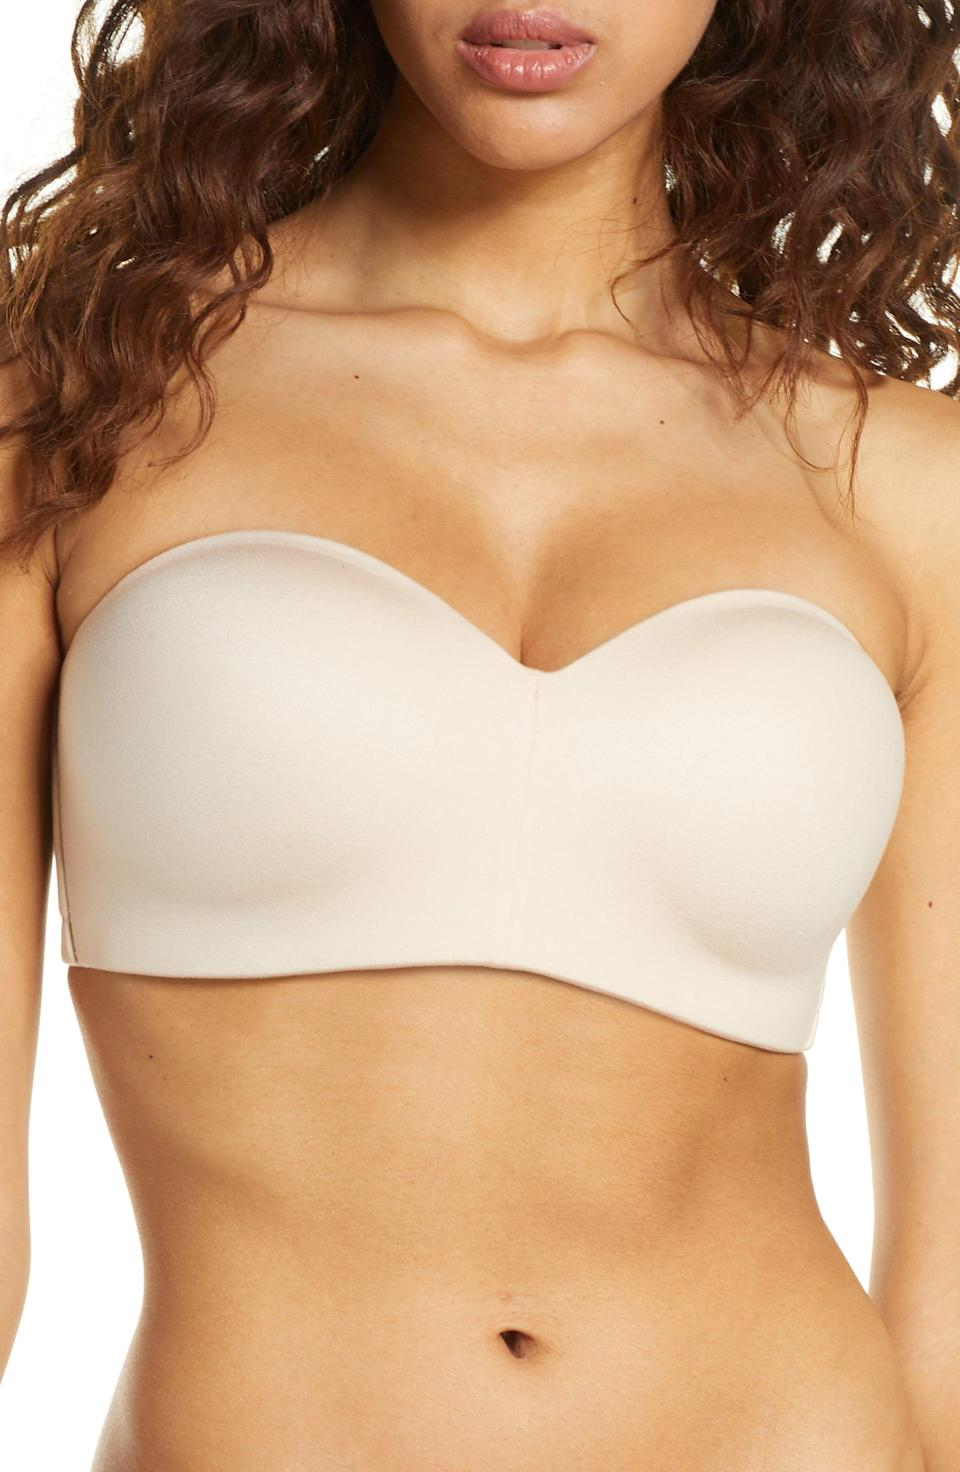 """<p><strong>WACOAL</strong></p><p>amazon.com</p><p><strong>$68.00</strong></p><p><a href=""""https://www.amazon.com/Wacoal-Womens-Staying-Power-Strapless/dp/B07R95S3LC?tag=syn-yahoo-20&ascsubtag=%5Bartid%7C10055.g.27437595%5Bsrc%7Cyahoo-us"""" rel=""""nofollow noopener"""" target=""""_blank"""" data-ylk=""""slk:Shop Now"""" class=""""link rapid-noclick-resp"""">Shop Now</a></p><p>If you're looking for a supportive strapless bra without the underwire, this style from Wacoal (the same brand as our top pick) has<strong> a wide, smoothing band and built-in boning so it <em>actually</em> stays put,</strong> unlike many other wireless options. It also has foam cups to add comfort and give shape.</p><p><em>Available in band sizes 32-40 and cup sizes B-DDD</em></p>"""